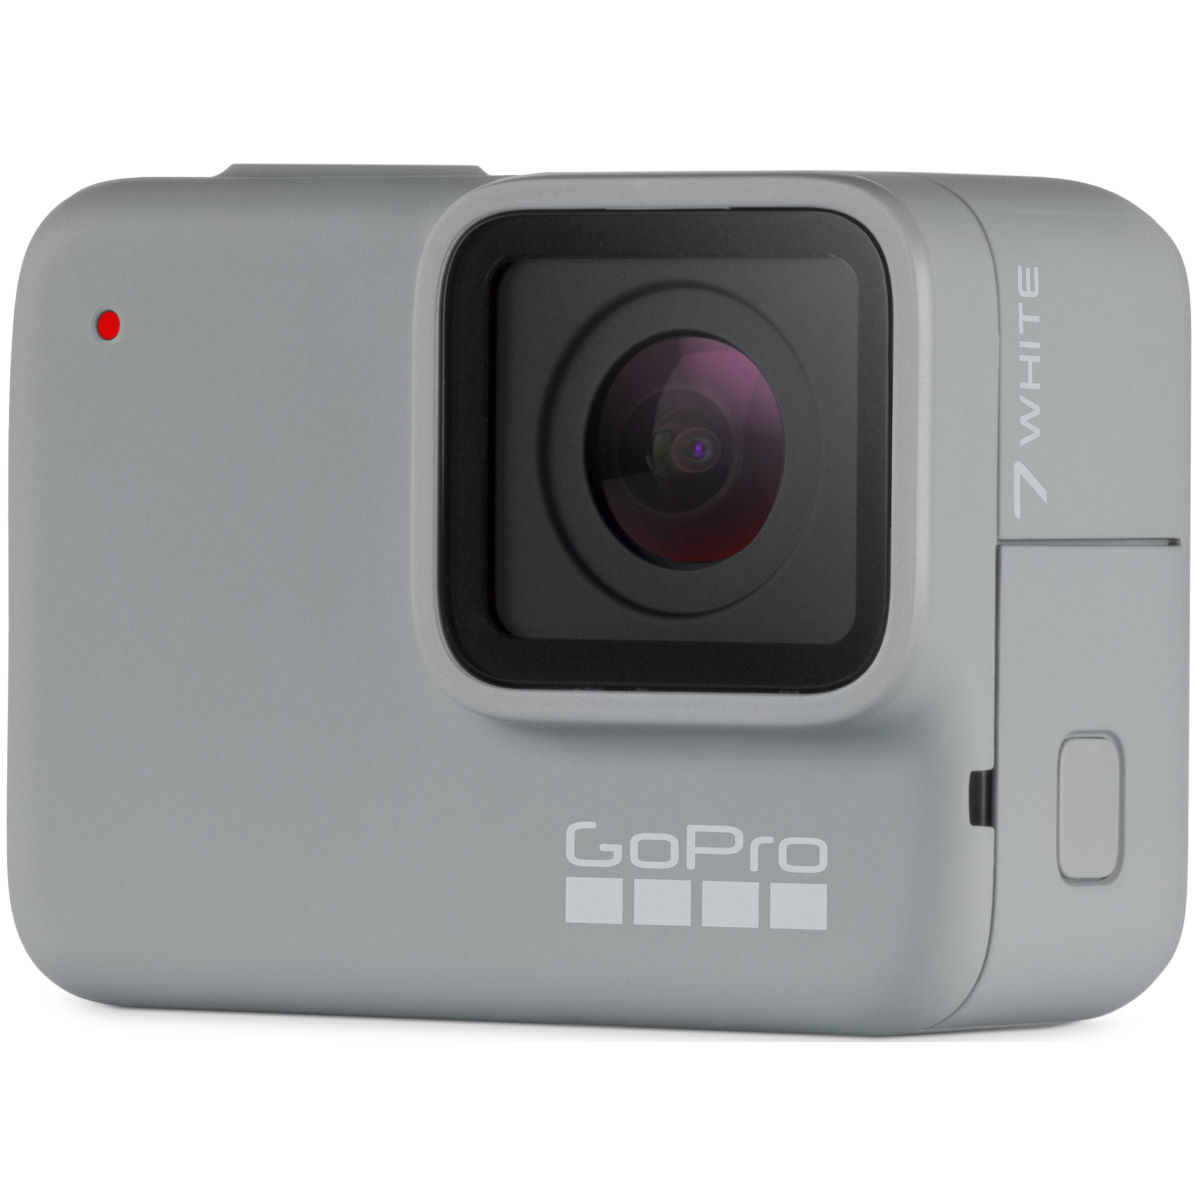 GoPro HERO7 White - Cámaras de vídeo y fotos